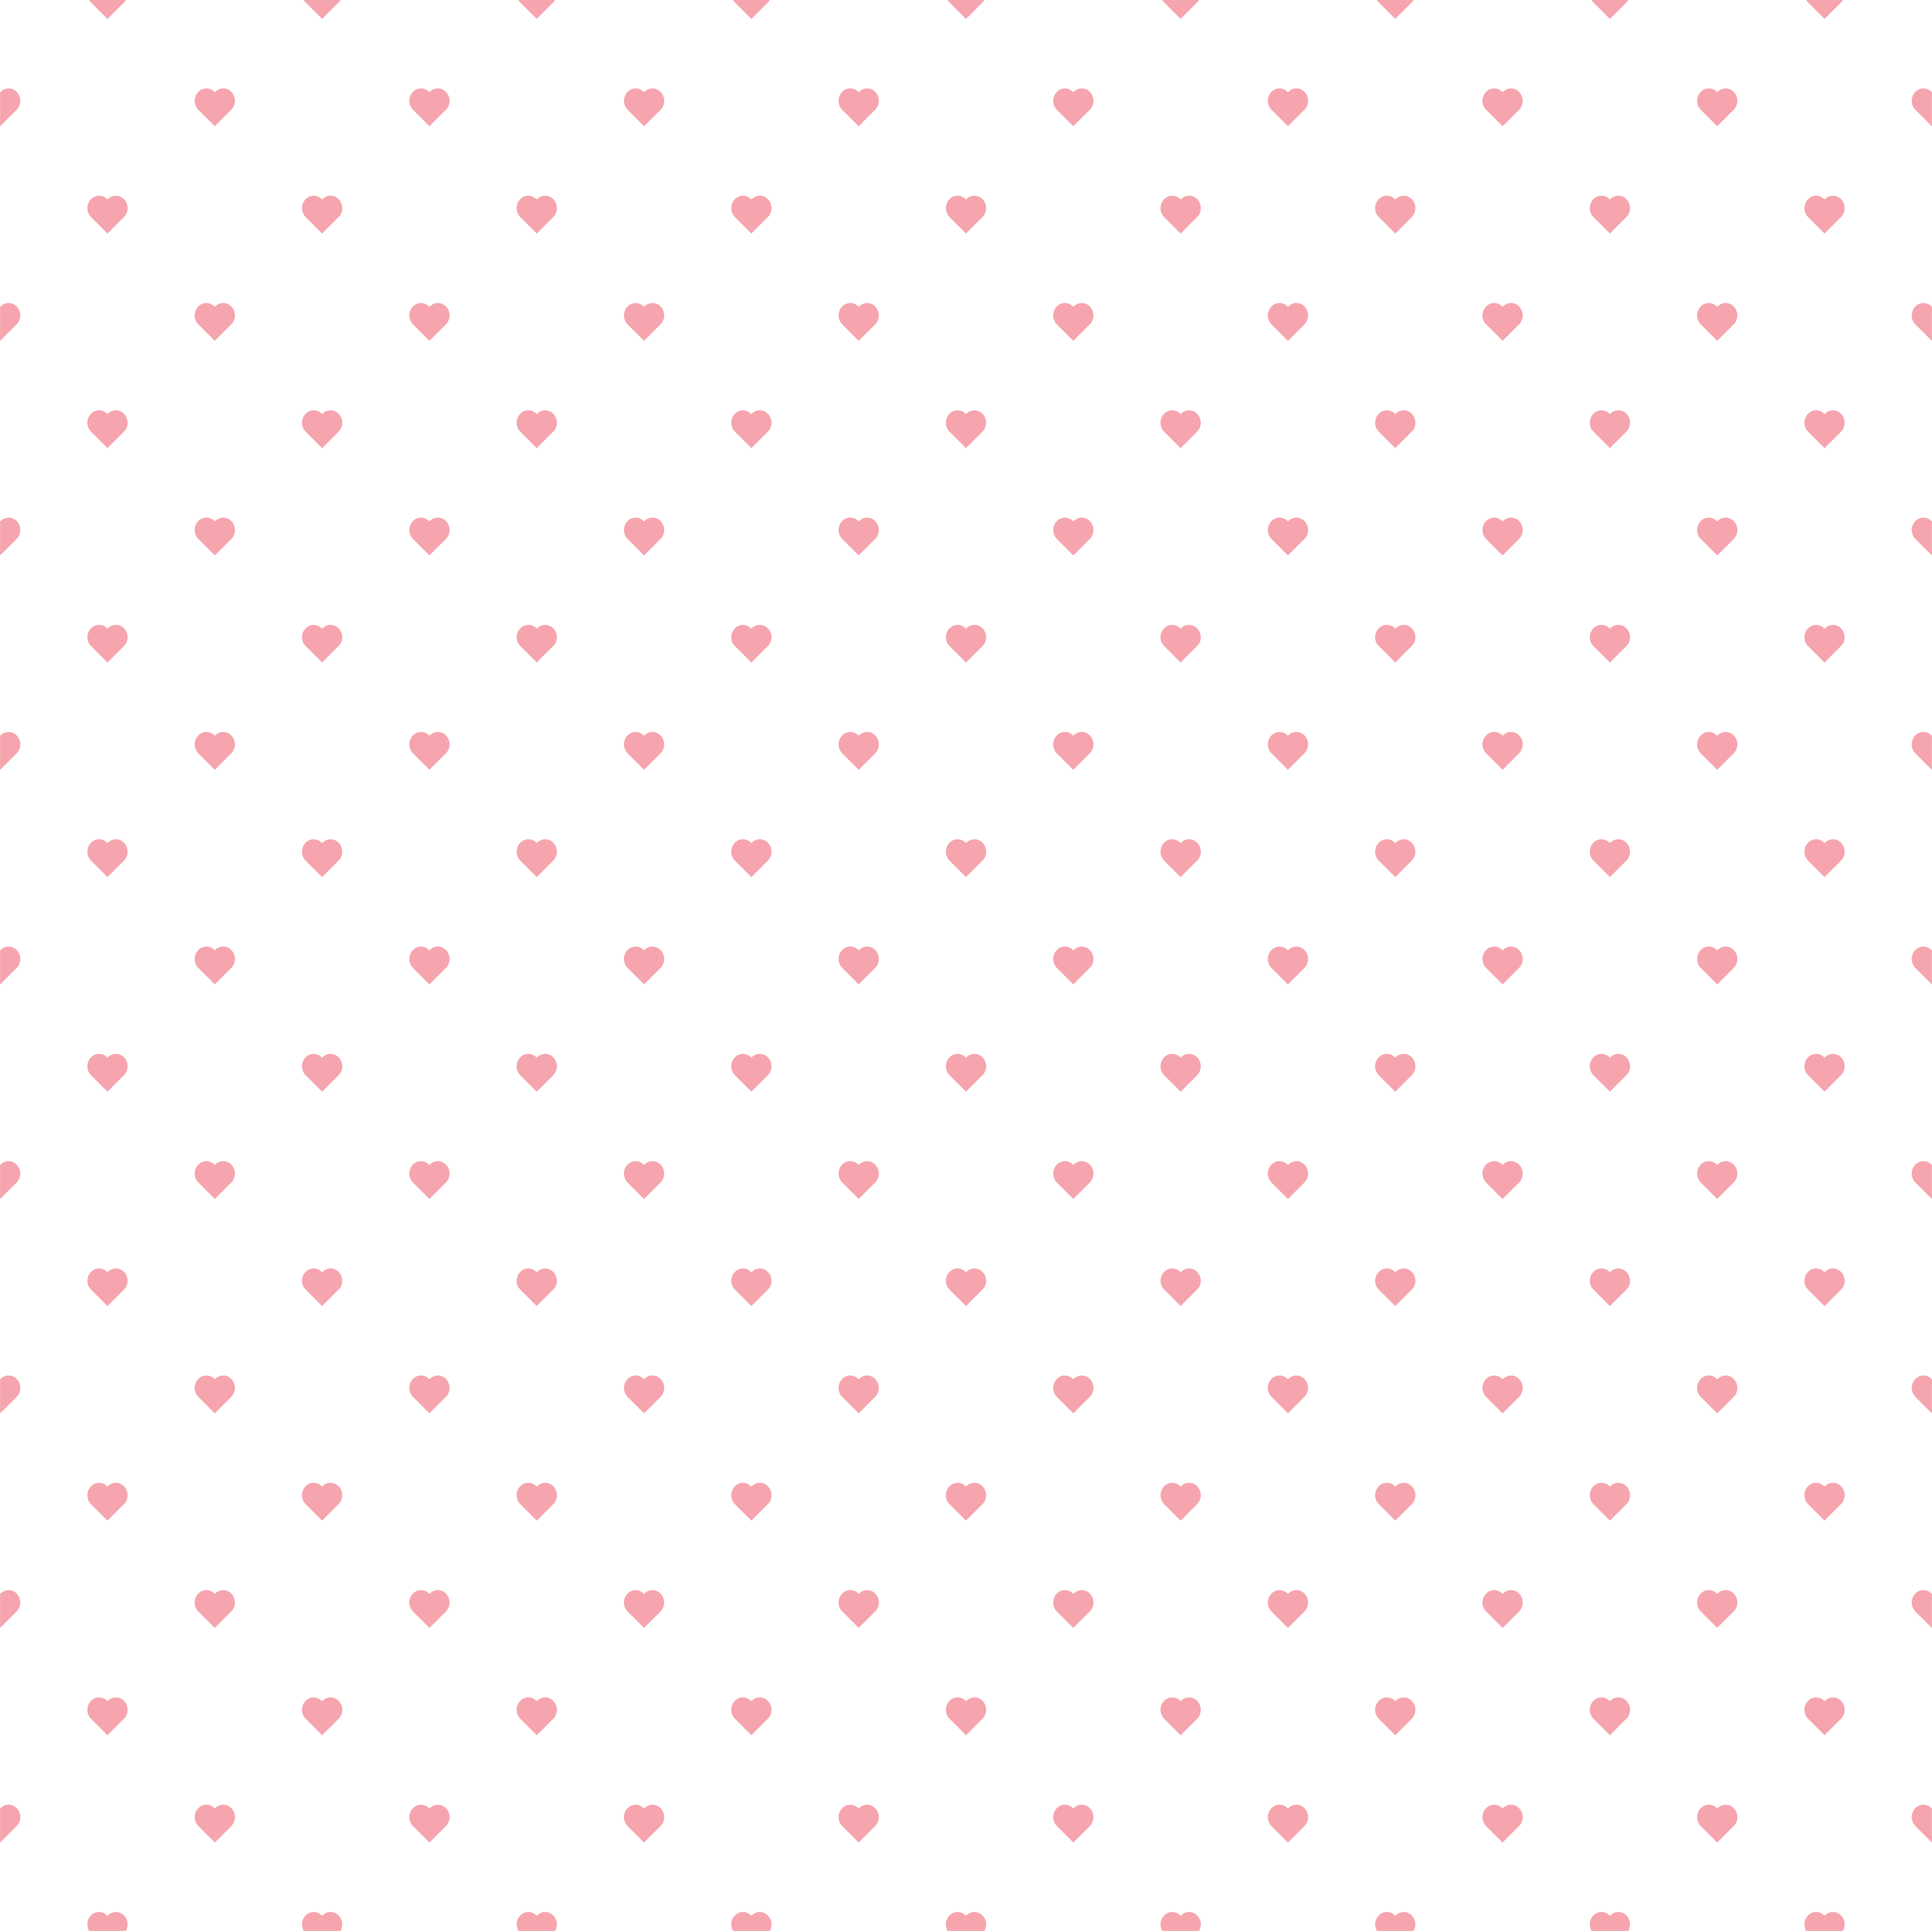 hearts background png